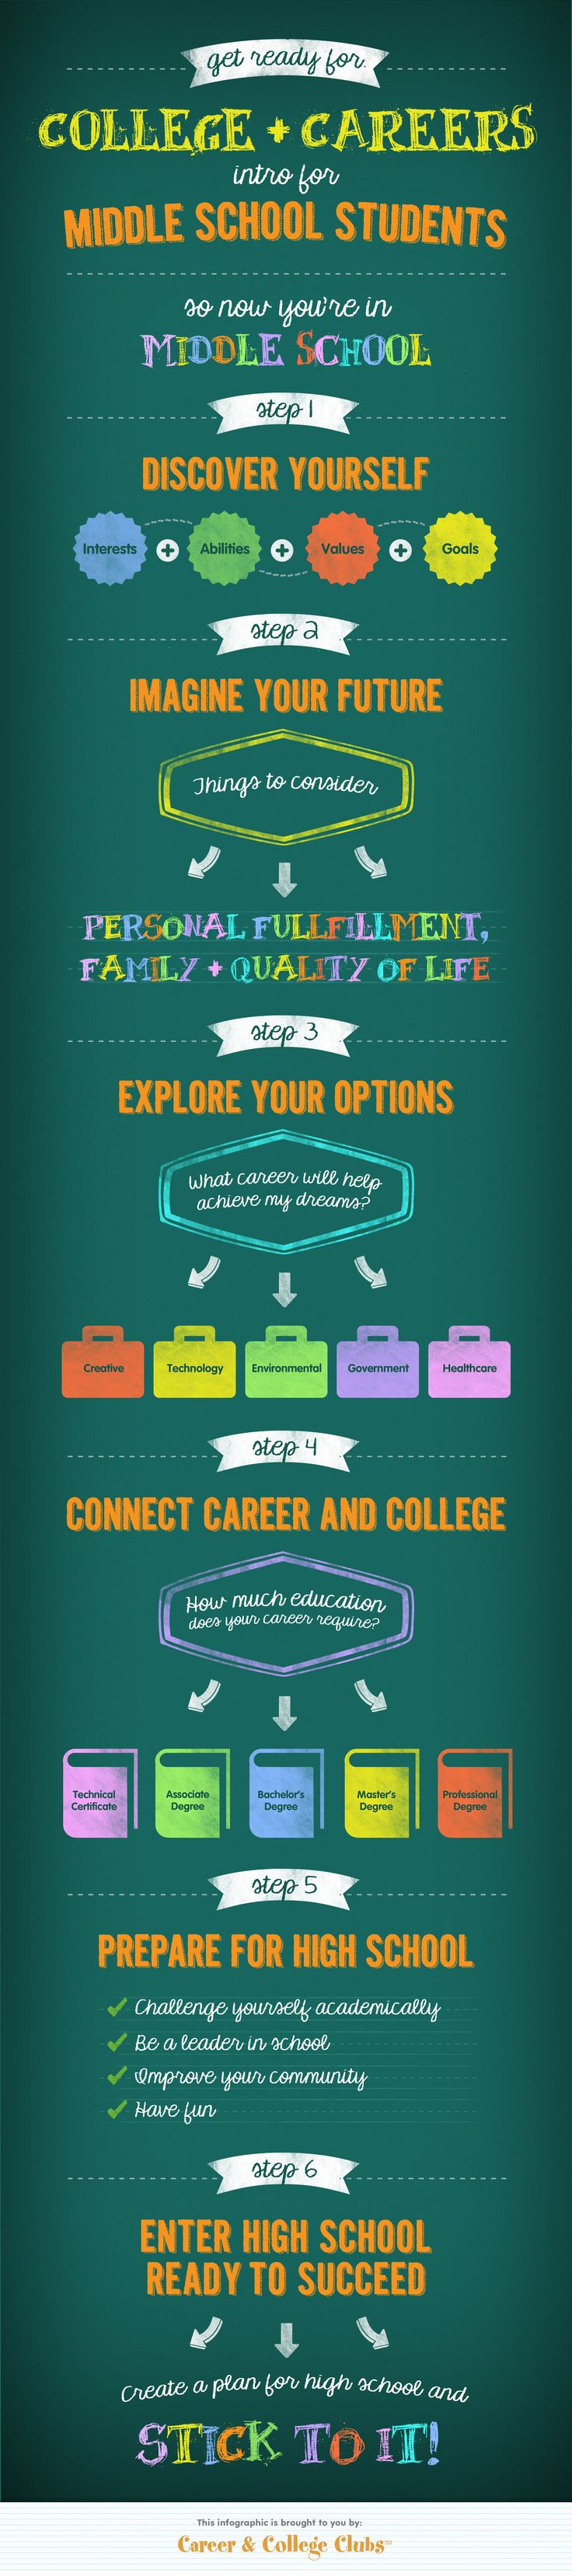 25+ best ideas about Career exploration on Pinterest | Career ...